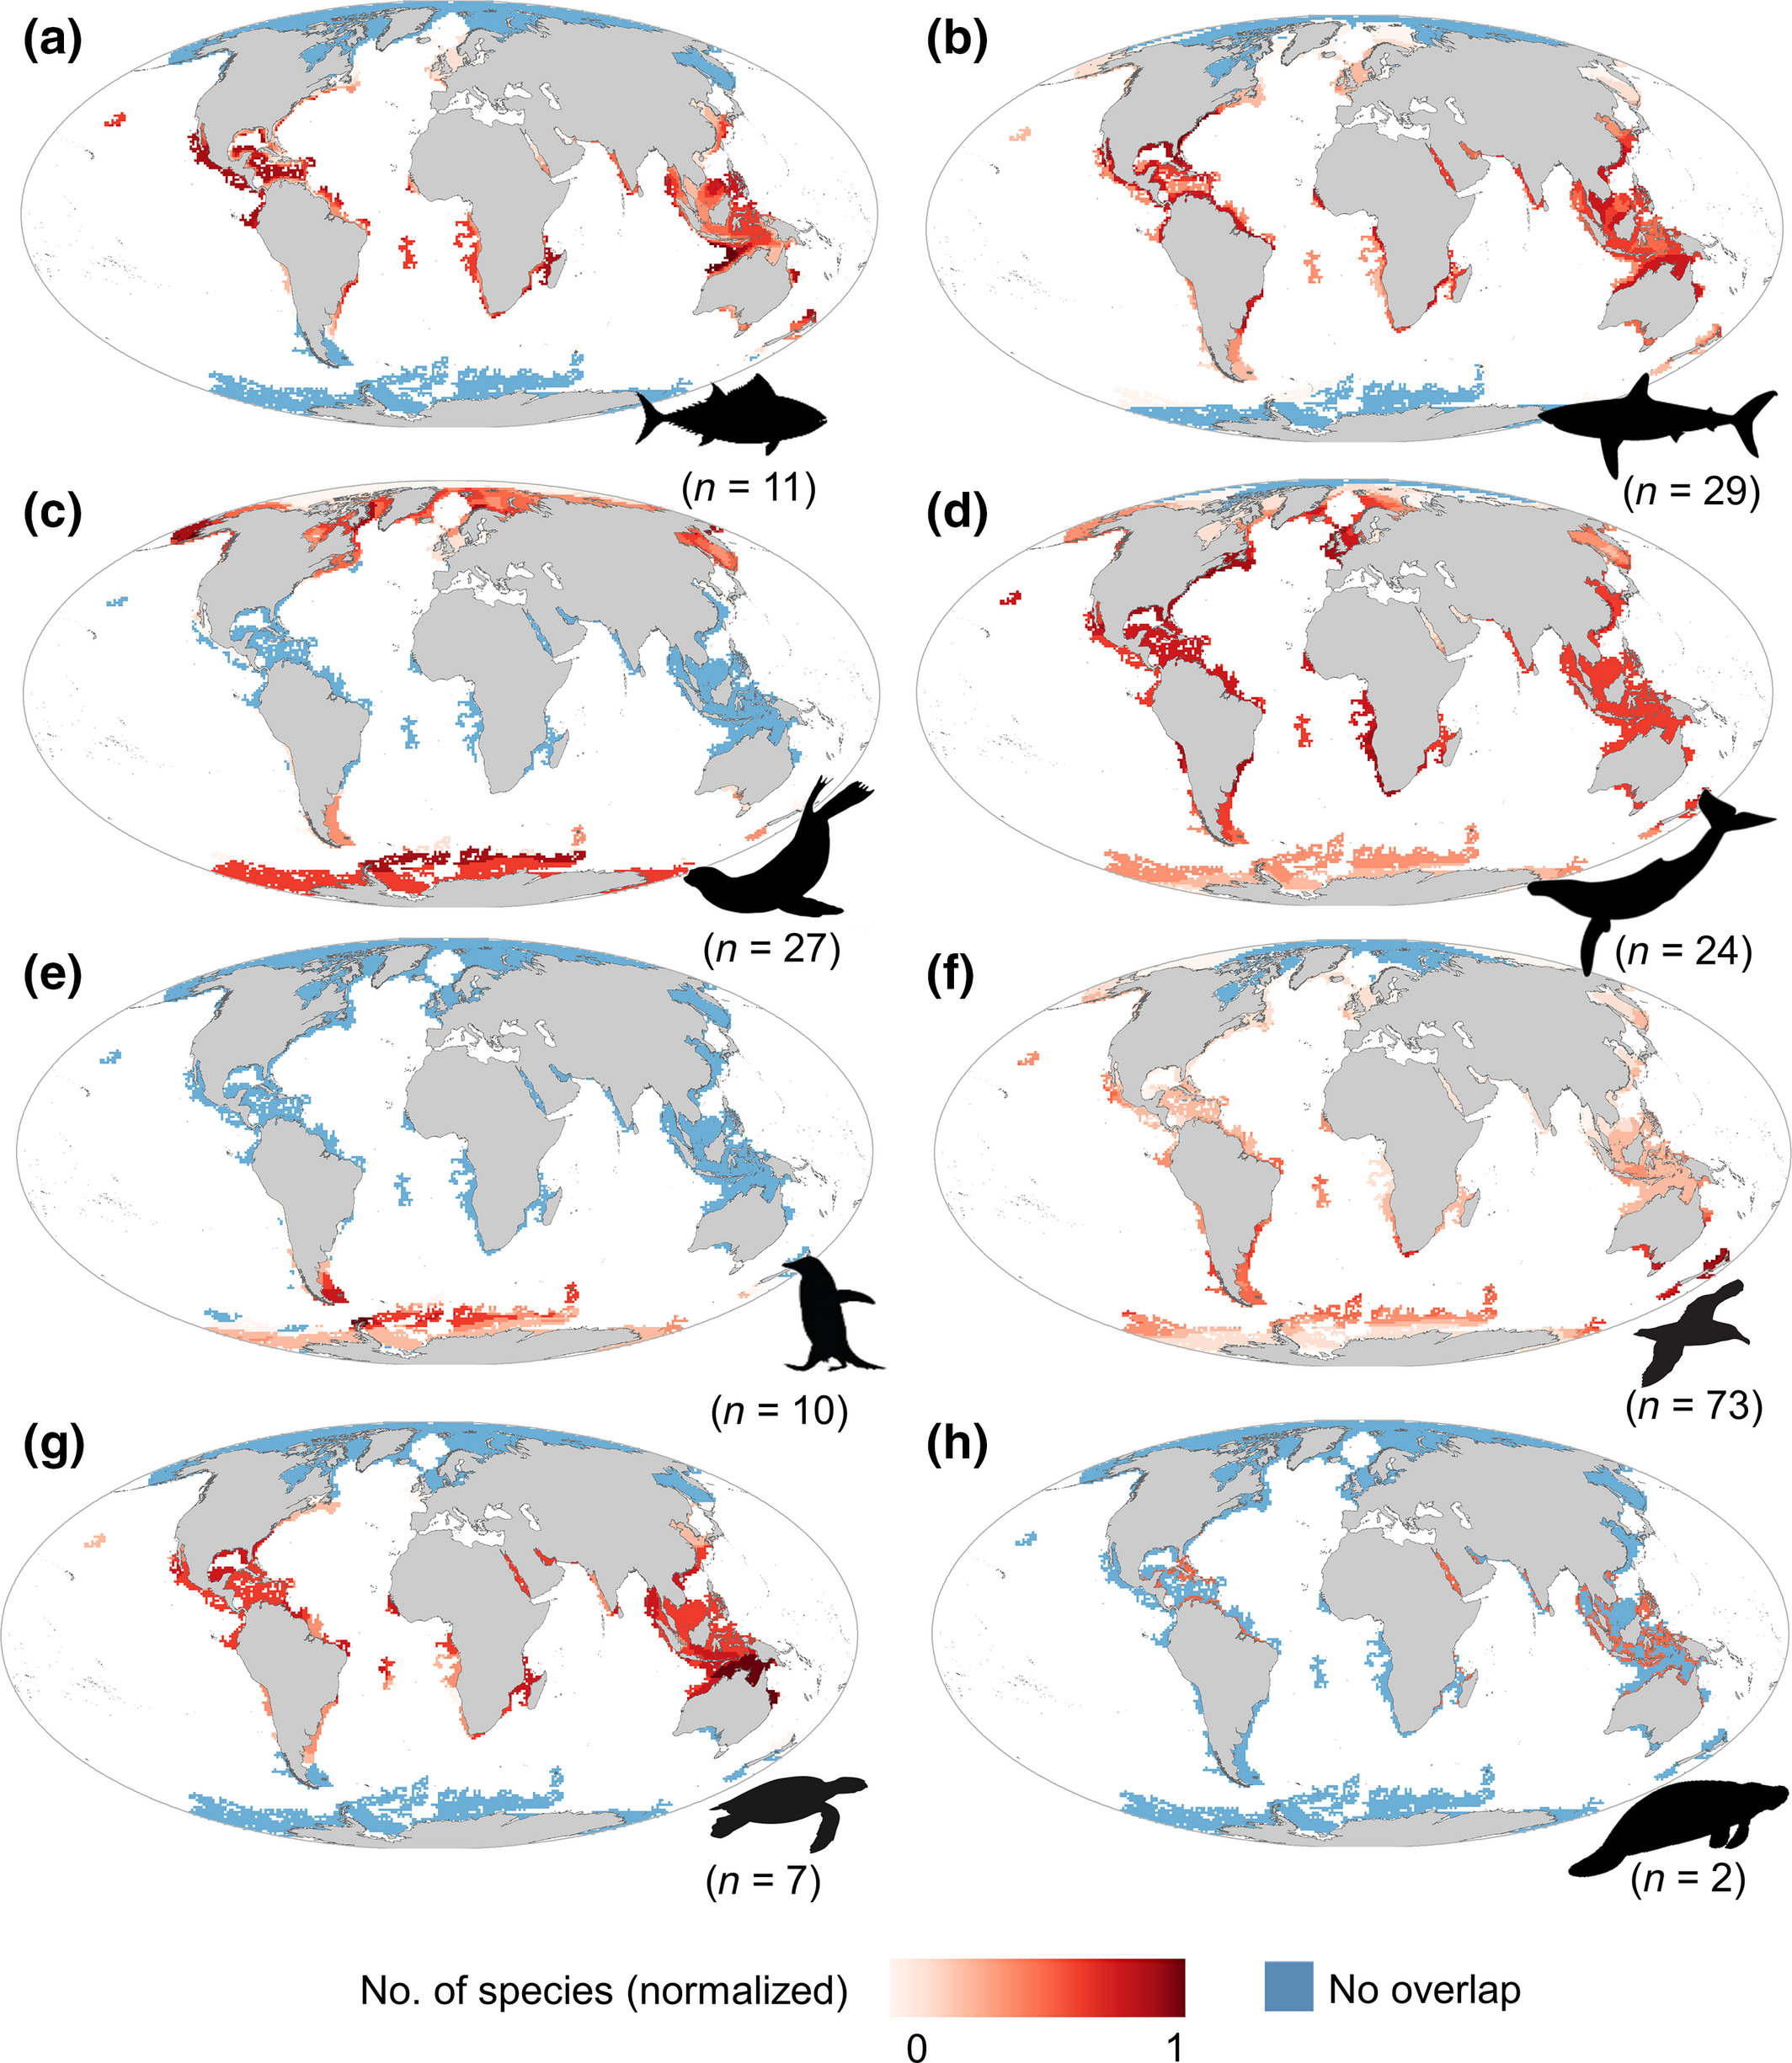 Maps of the spatial overlap between gaps of the Argo network and extent of occurrence, by group of animals. In red, the animal borne instruments complement the best the Argo Array. In blue, there is no complementarity, often simply because the species does not live in the area (source: [March et al. 2019])